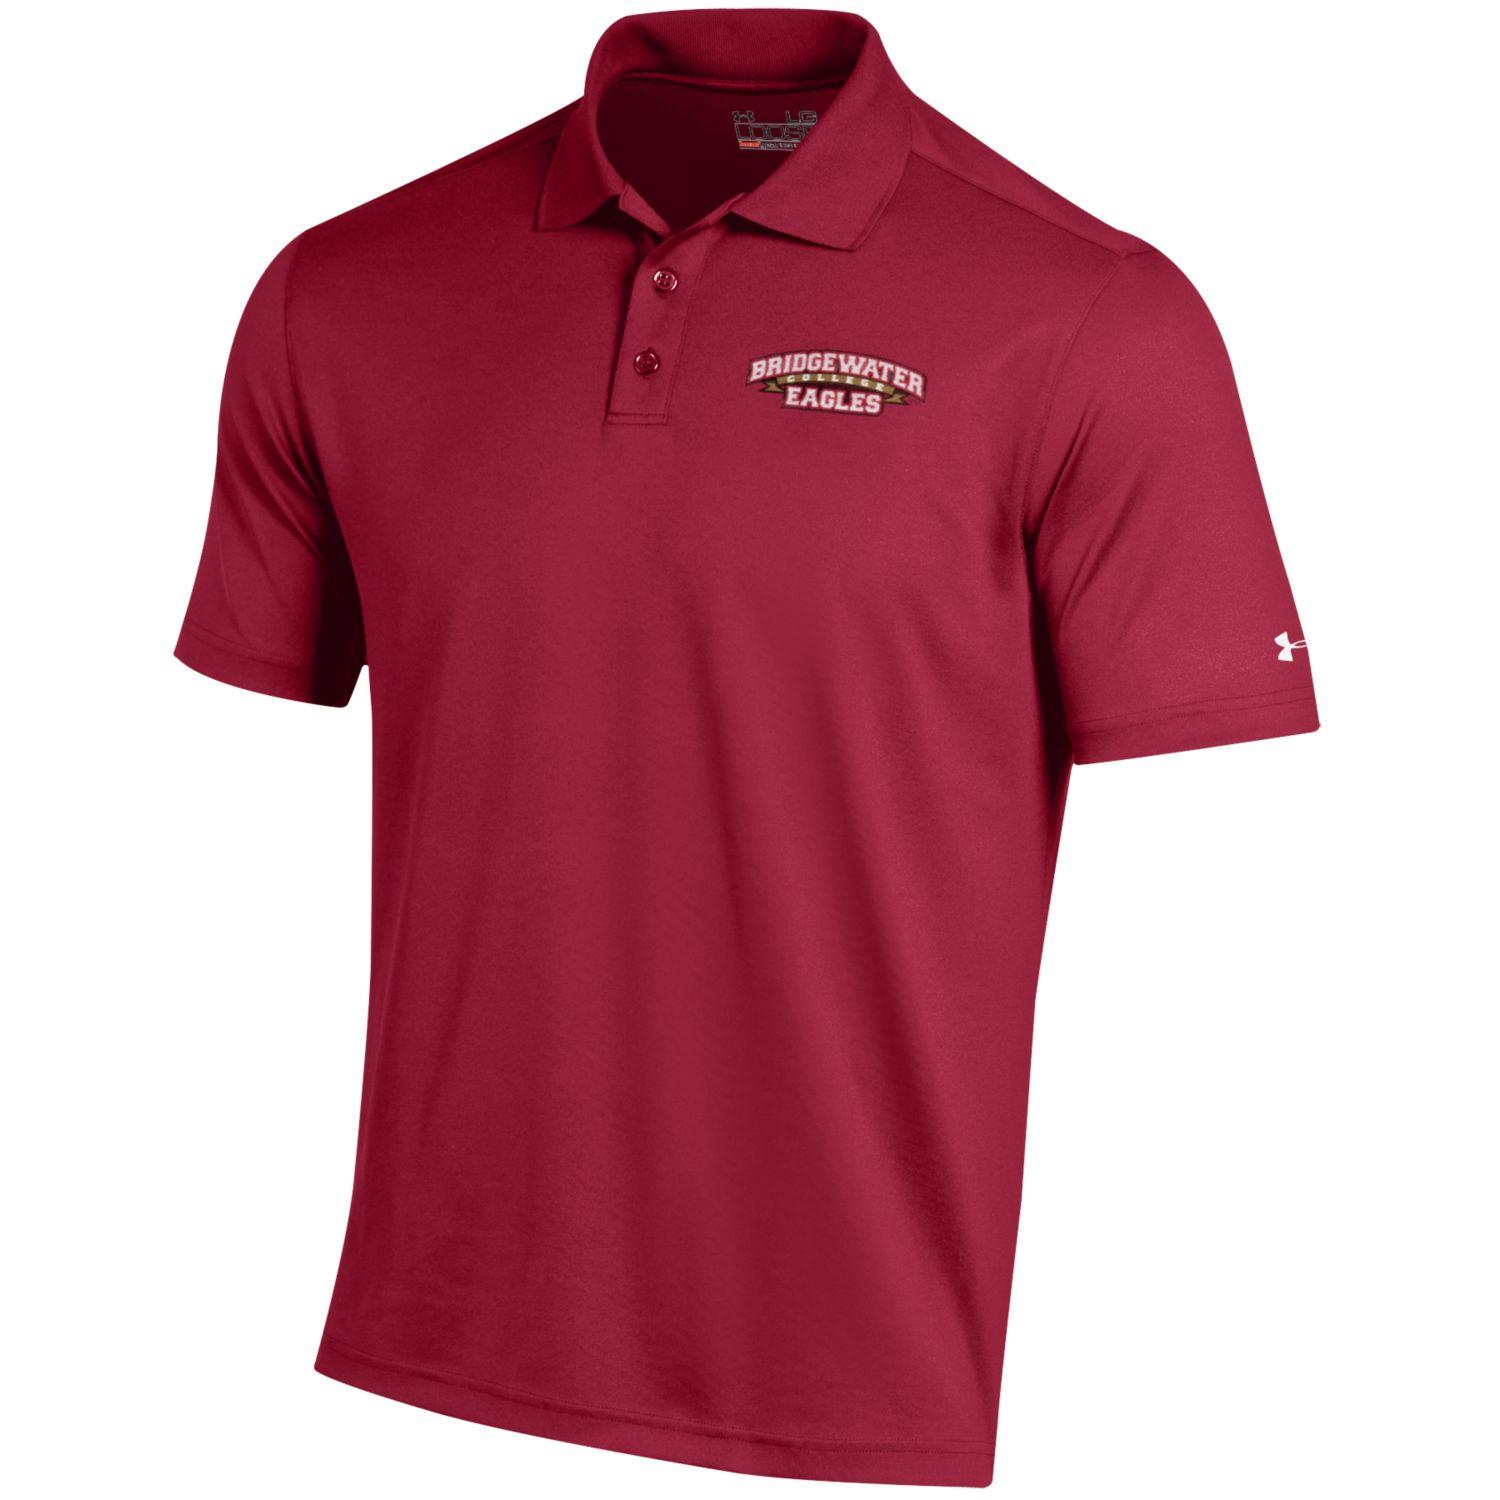 Bridgewater College Crimson Under Armour Men's Polo